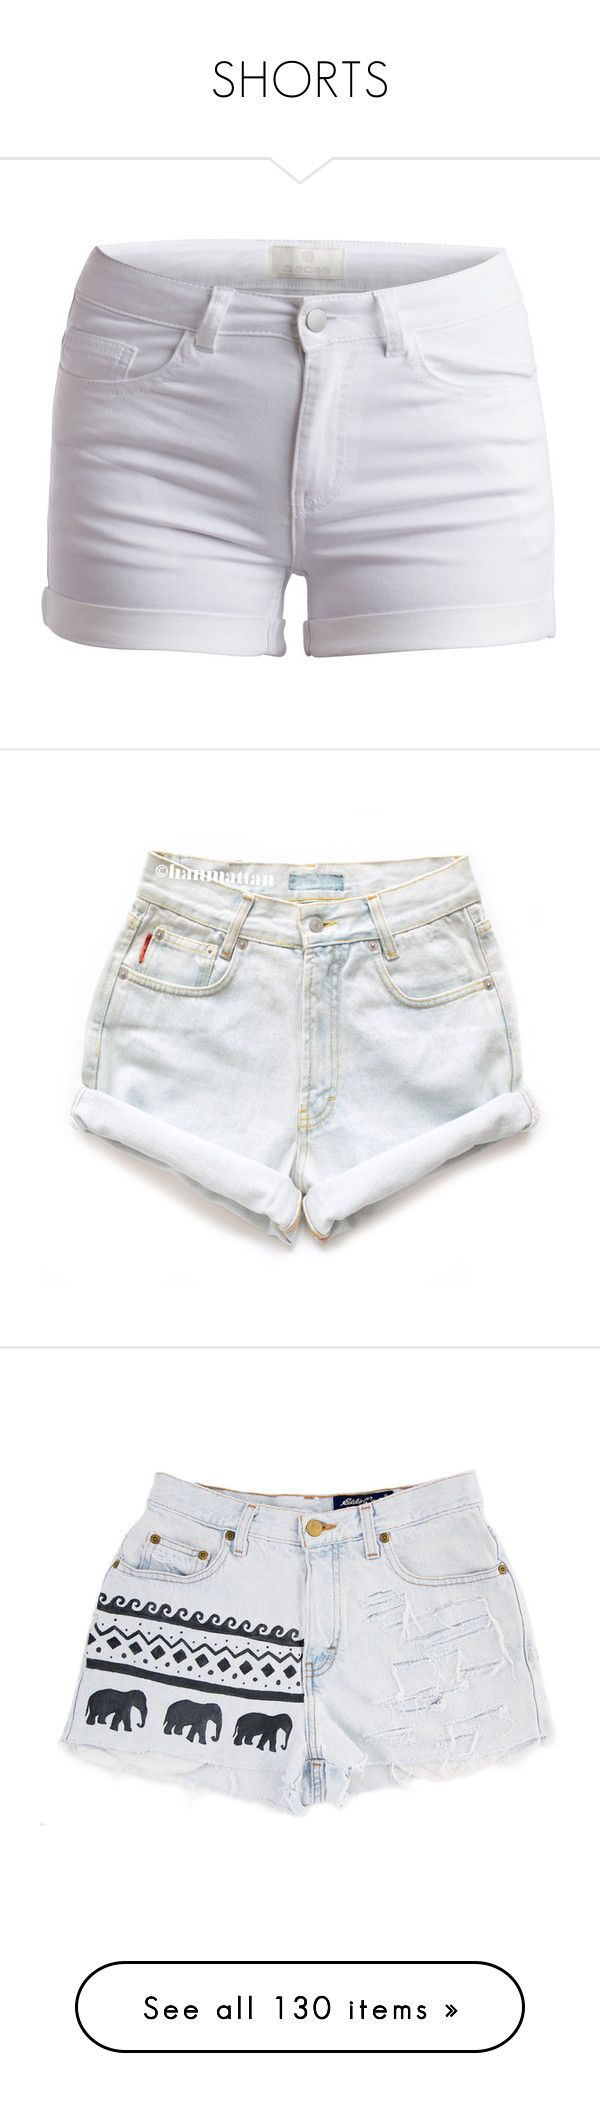 """""""SHORTS"""" by dearxadriana on Polyvore featuring black, shorts, jeanshorts, multicolored, distress, bottoms, pants, short, bright white and fold over shorts"""